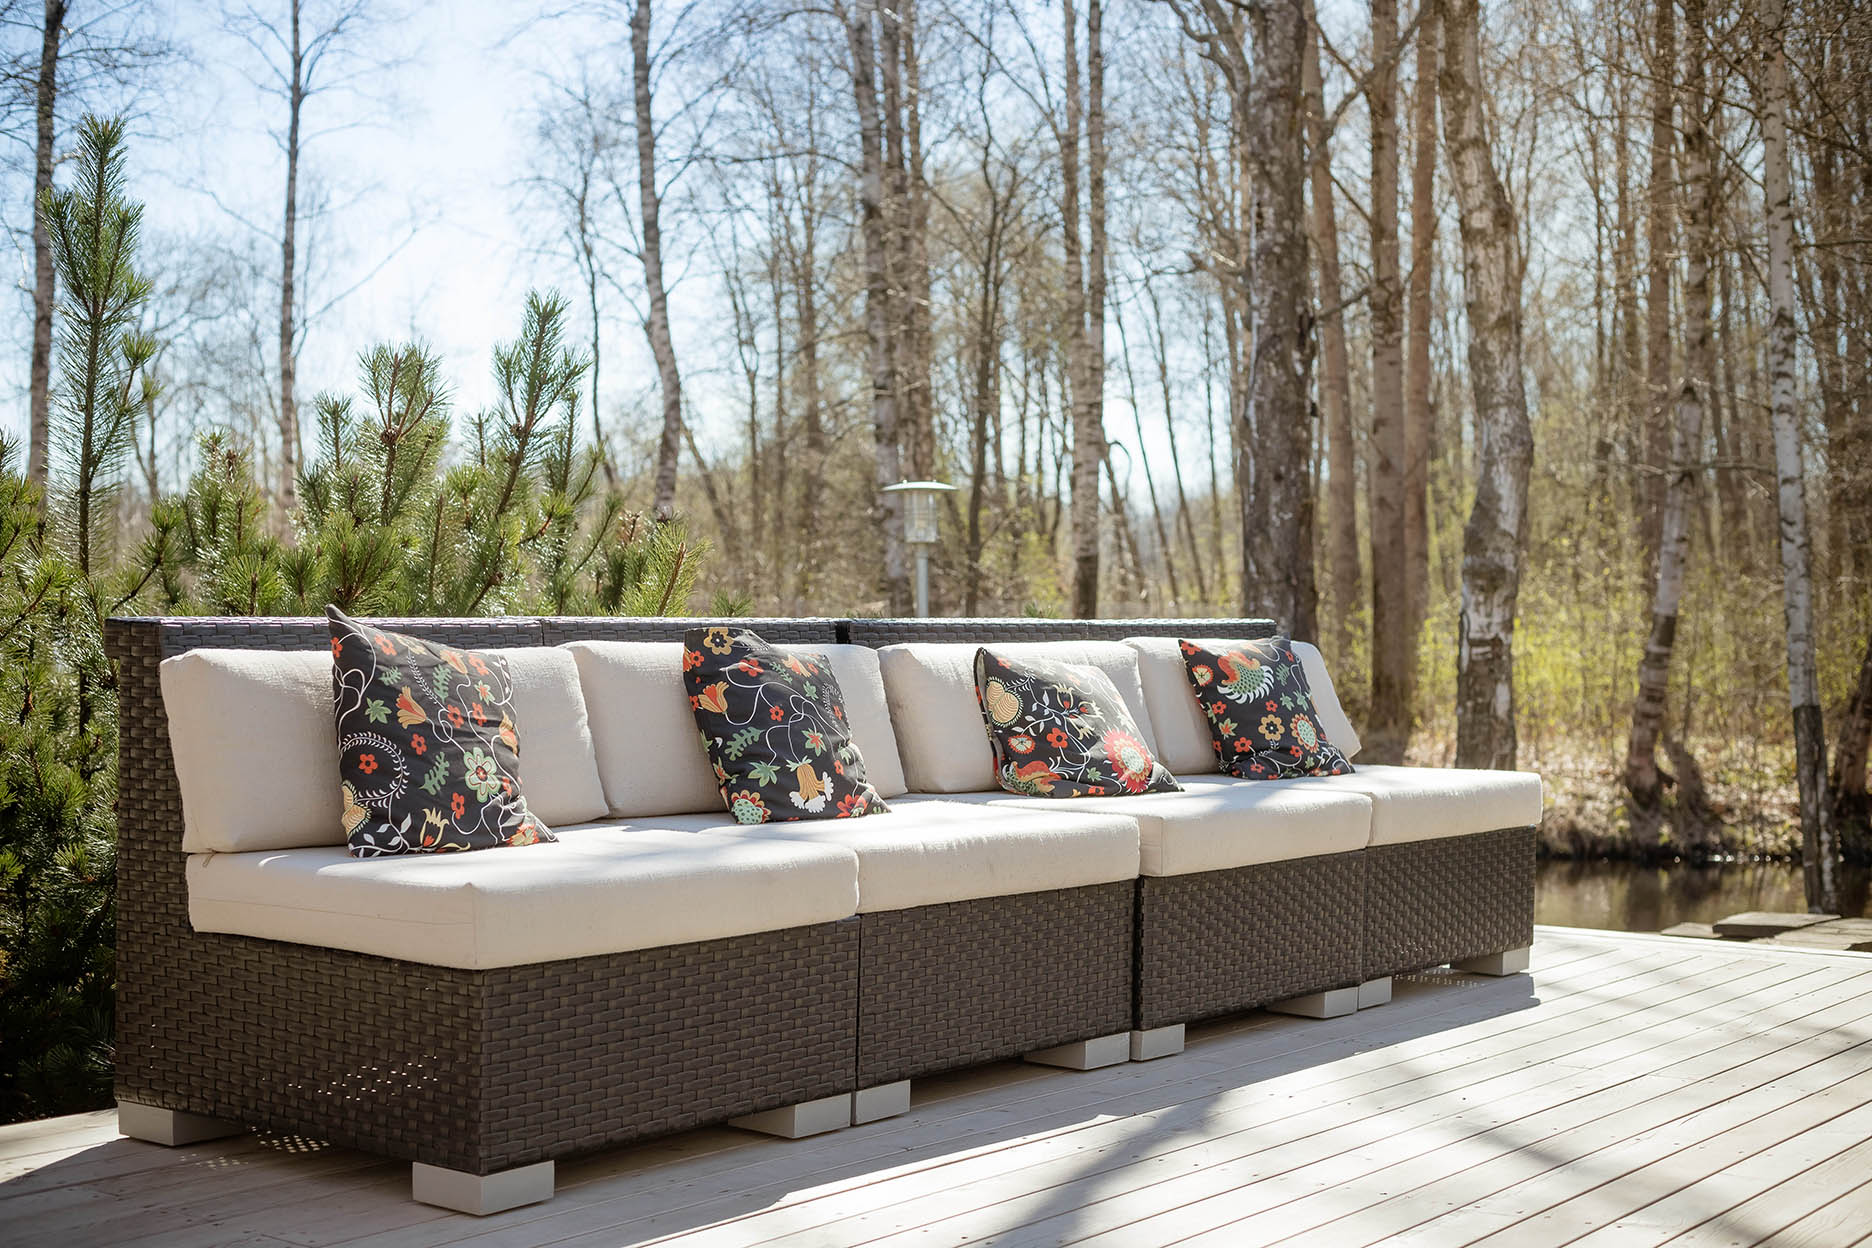 Large terrace patio with rattan garden furniture set.Wooden garden lounge chair with cushion. comfortable rattan sofa. relaxing area outside .patio with furniture on wooden floor.relaxation on the terrace